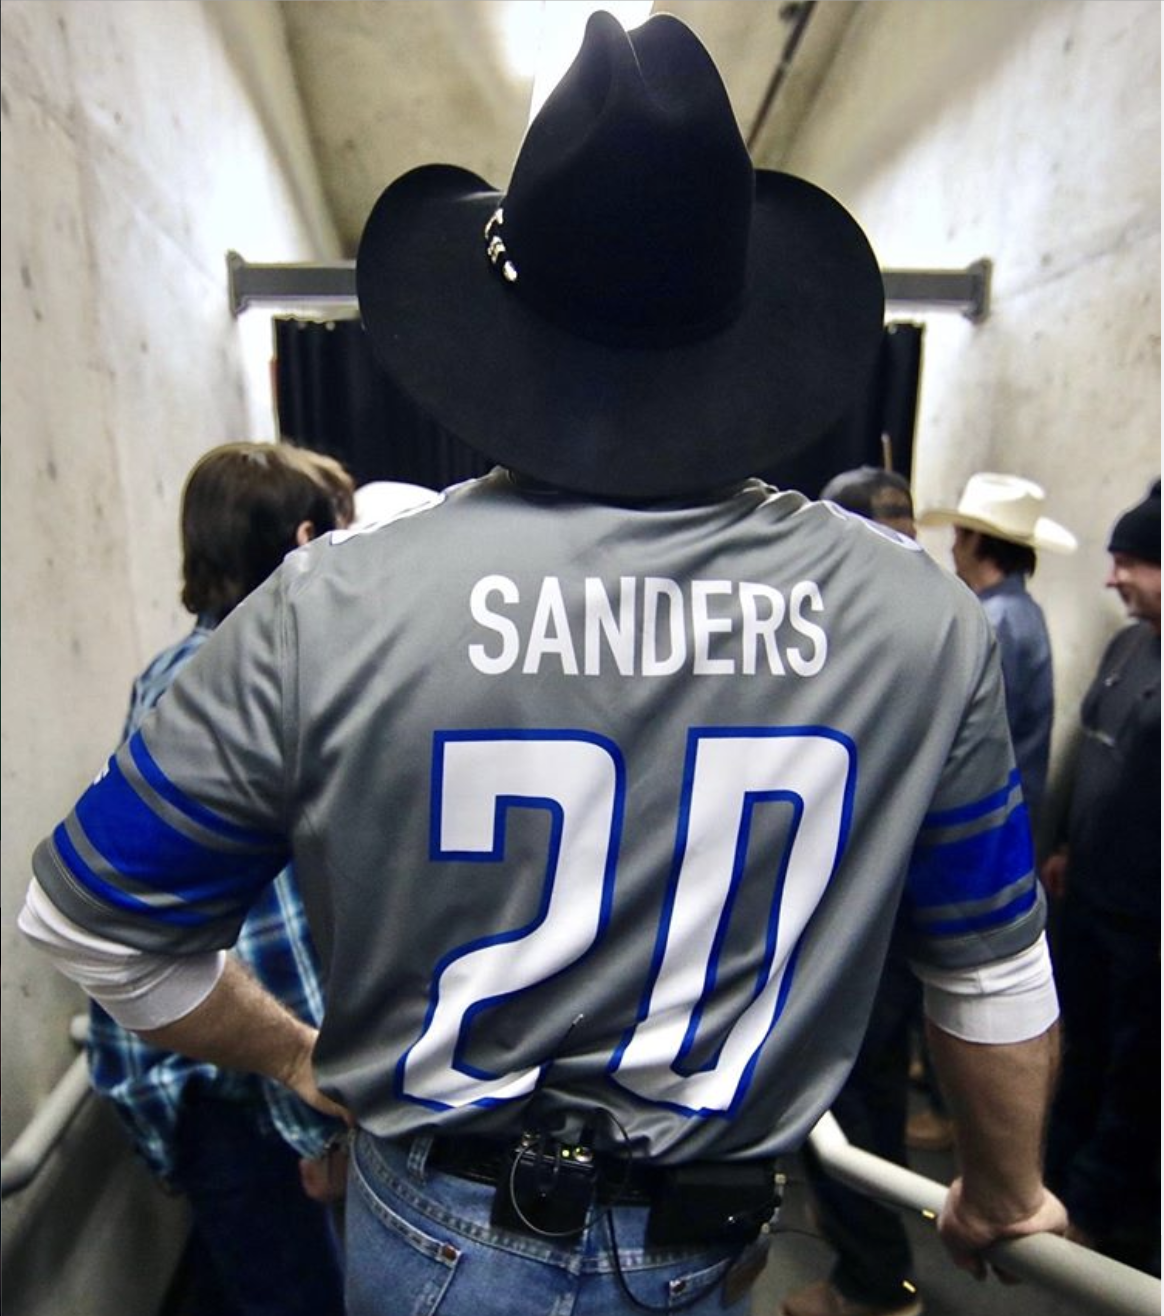 Garth Brooks's Barry Sanders Jersey Was Mistaken for Bernie Support in Detroit